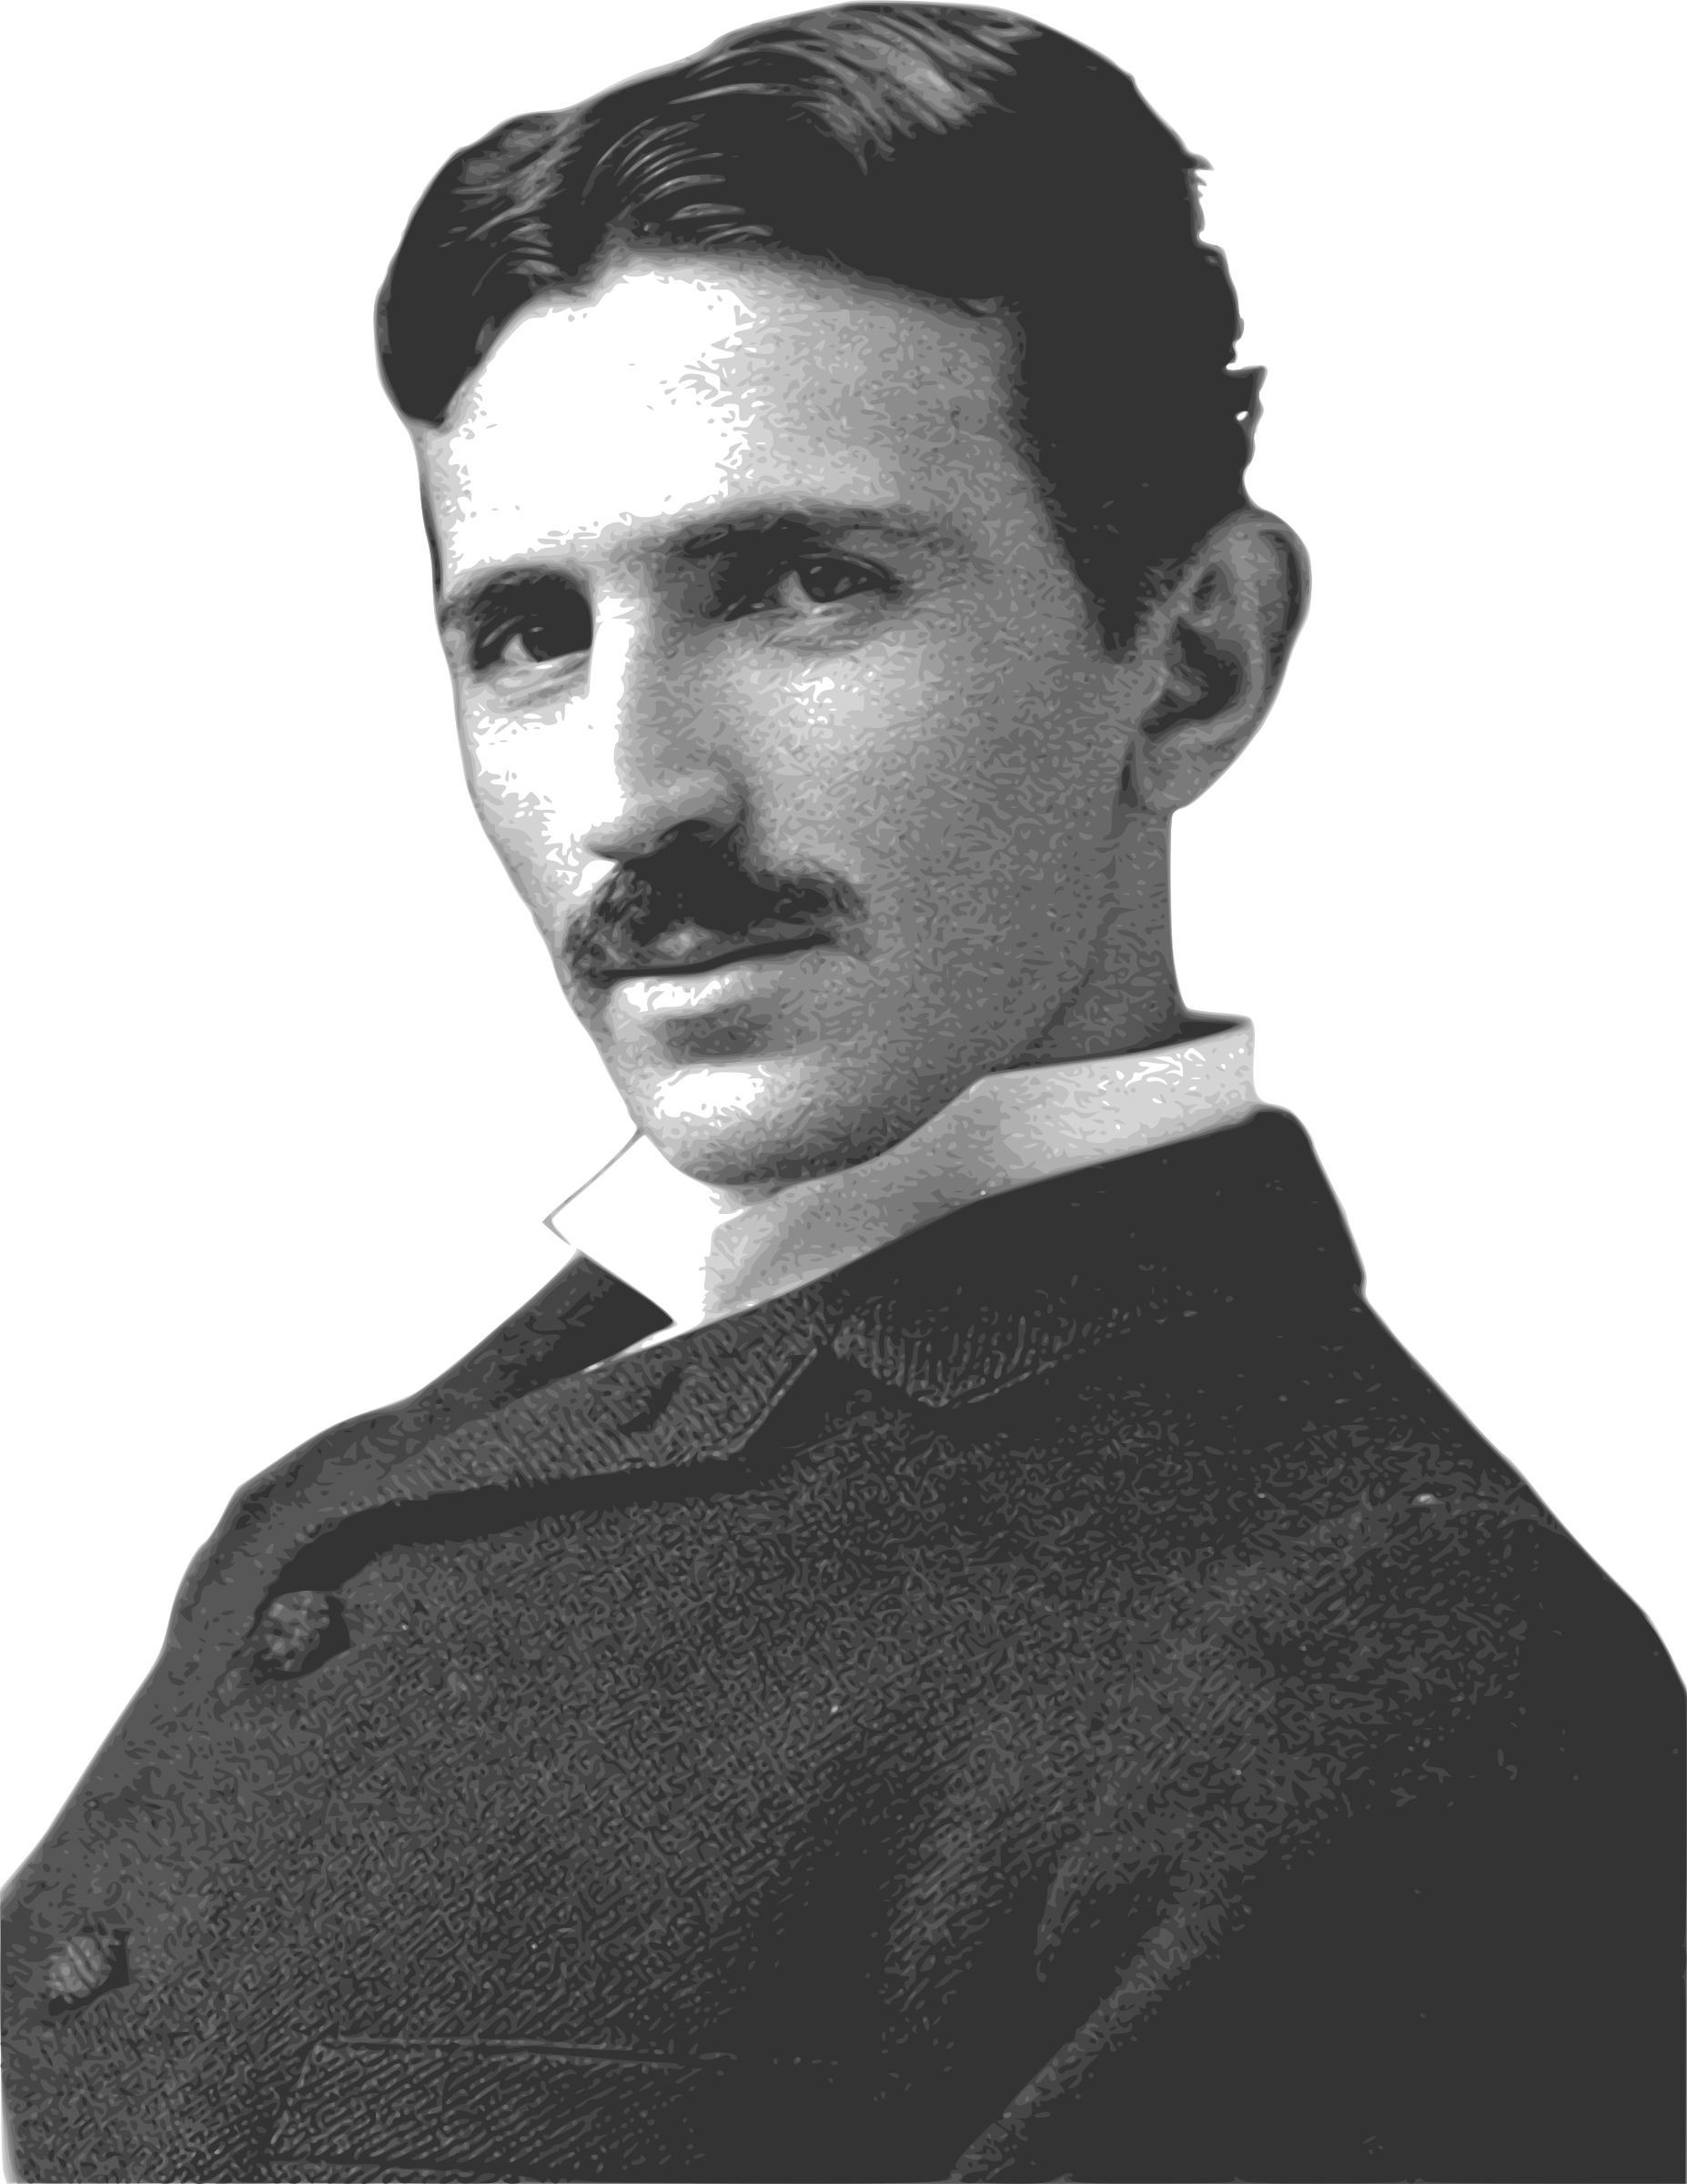 Nikola Tesla 1 by Merlin2525